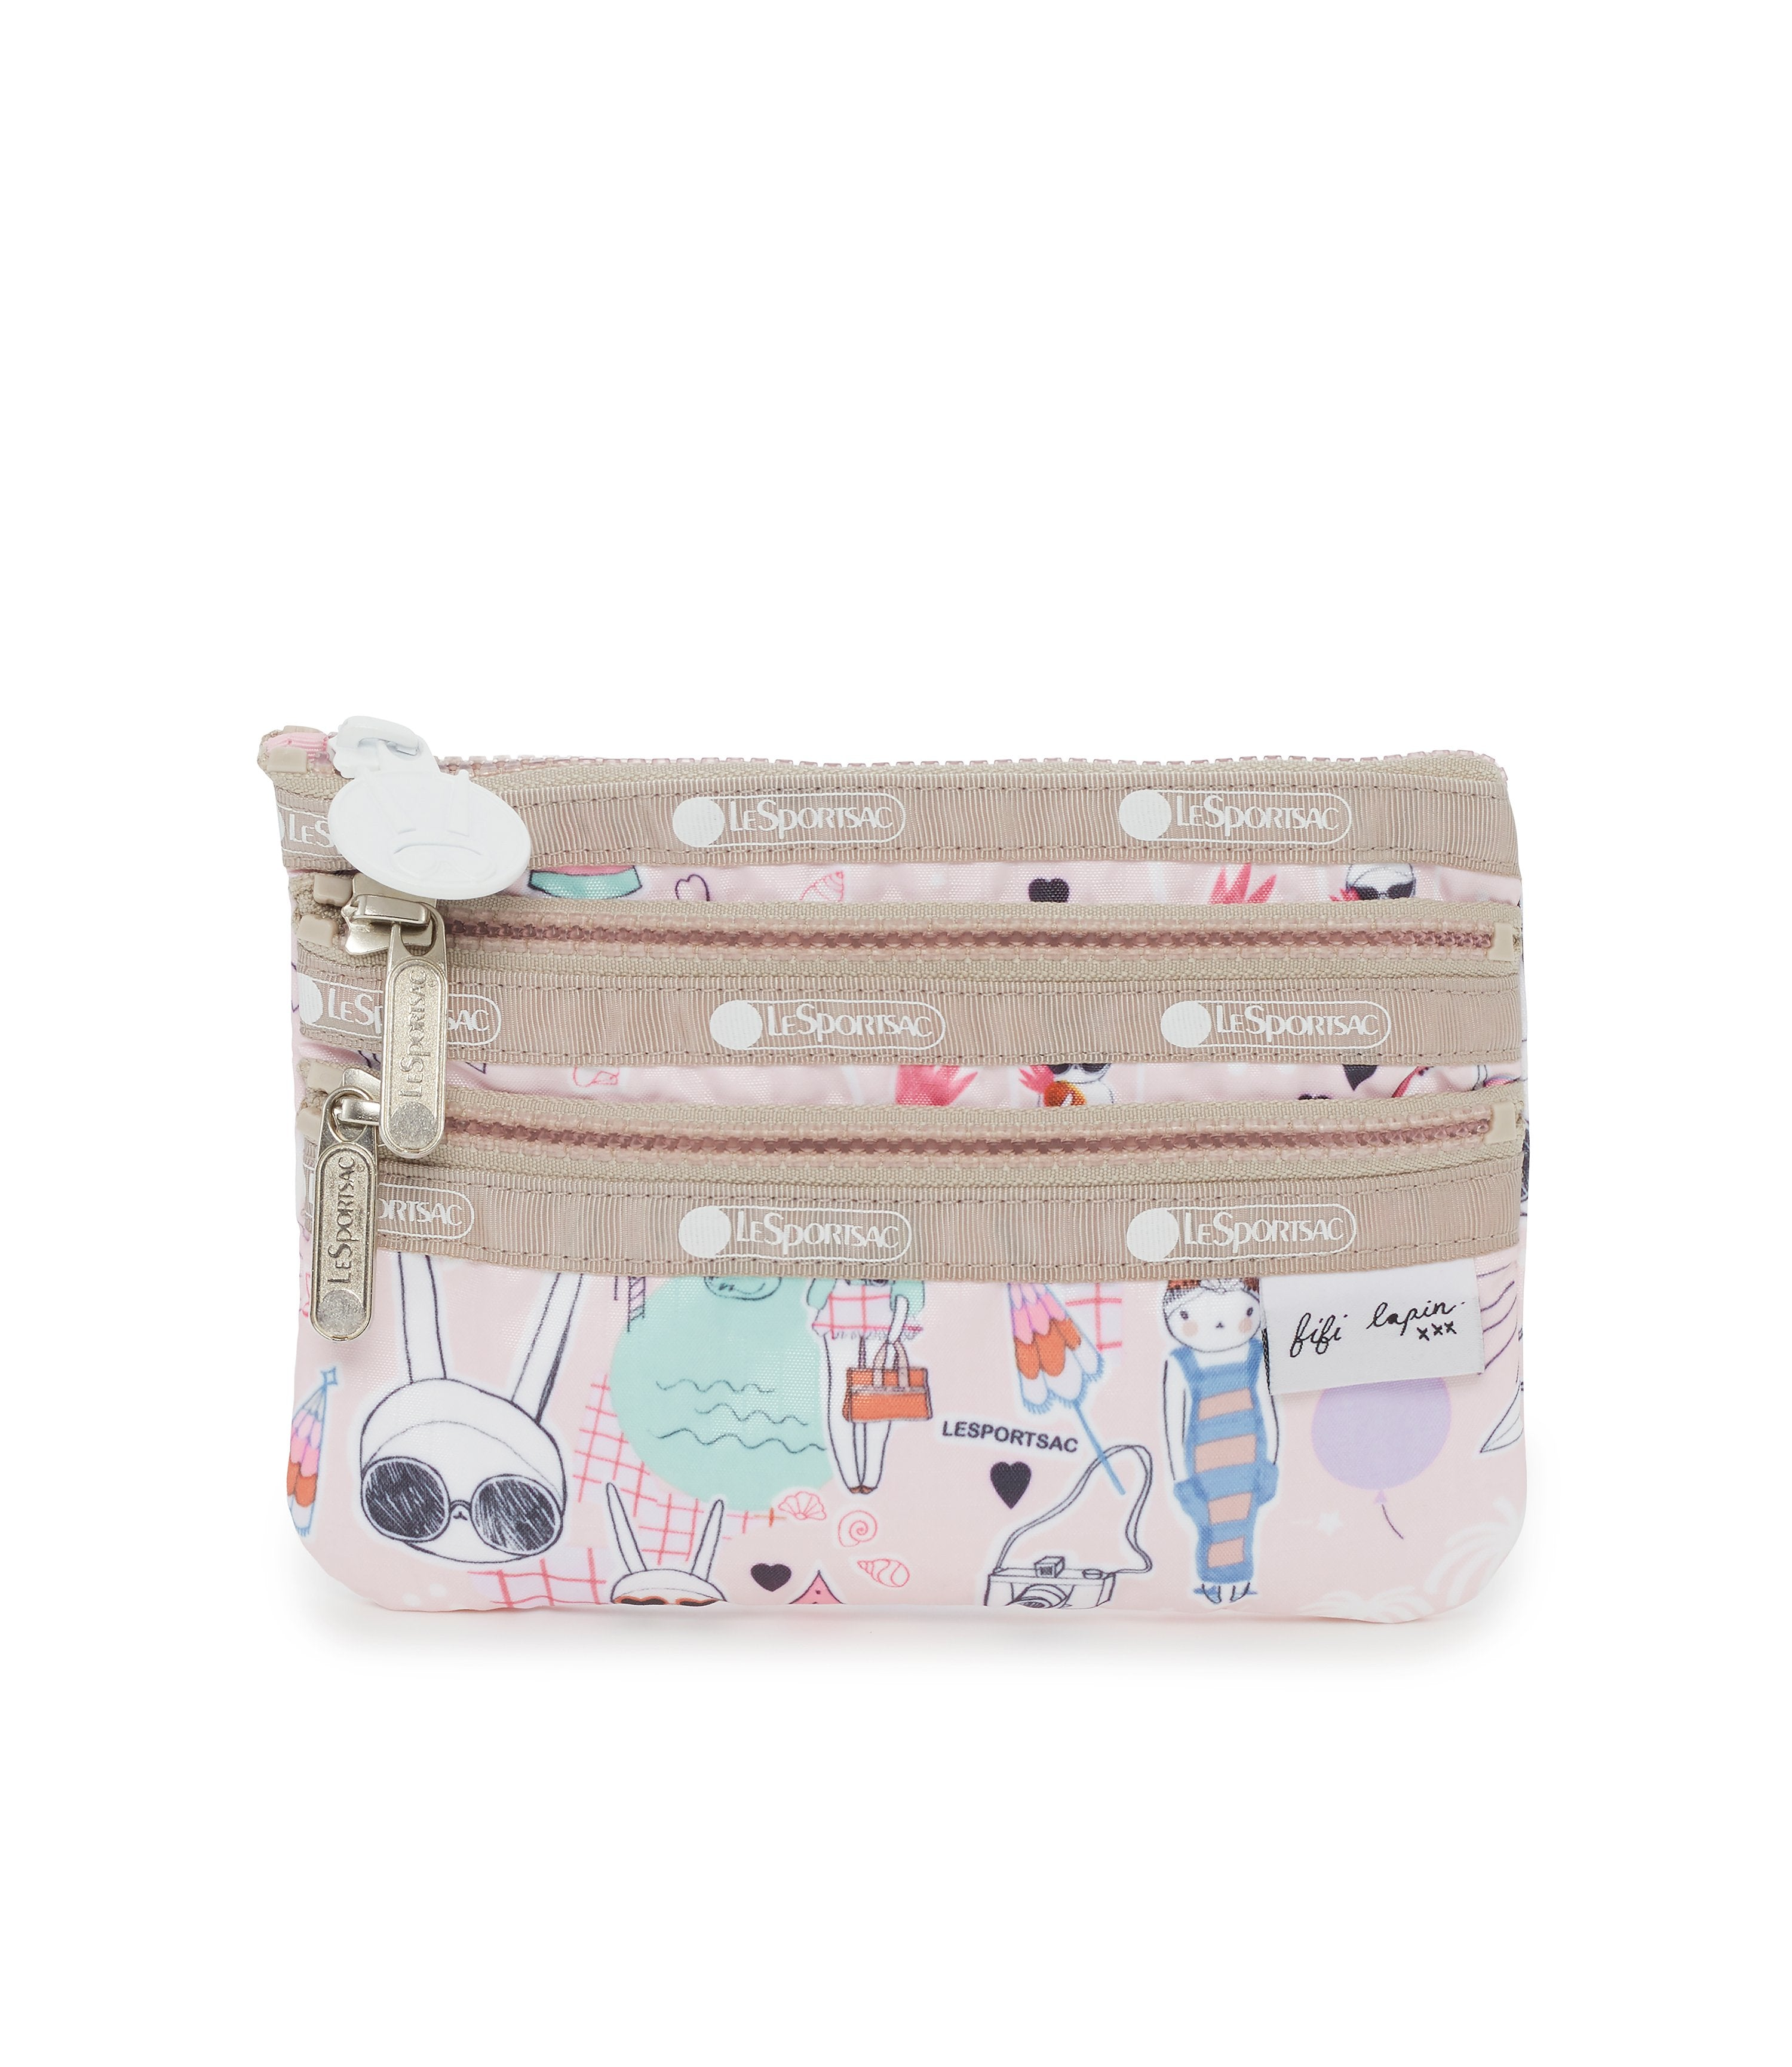 Special 3-Zip Cosmetic, Accessories and Cosmetic Bag, Lesportsac, Fifi Lapin, Fifi Pool Party print